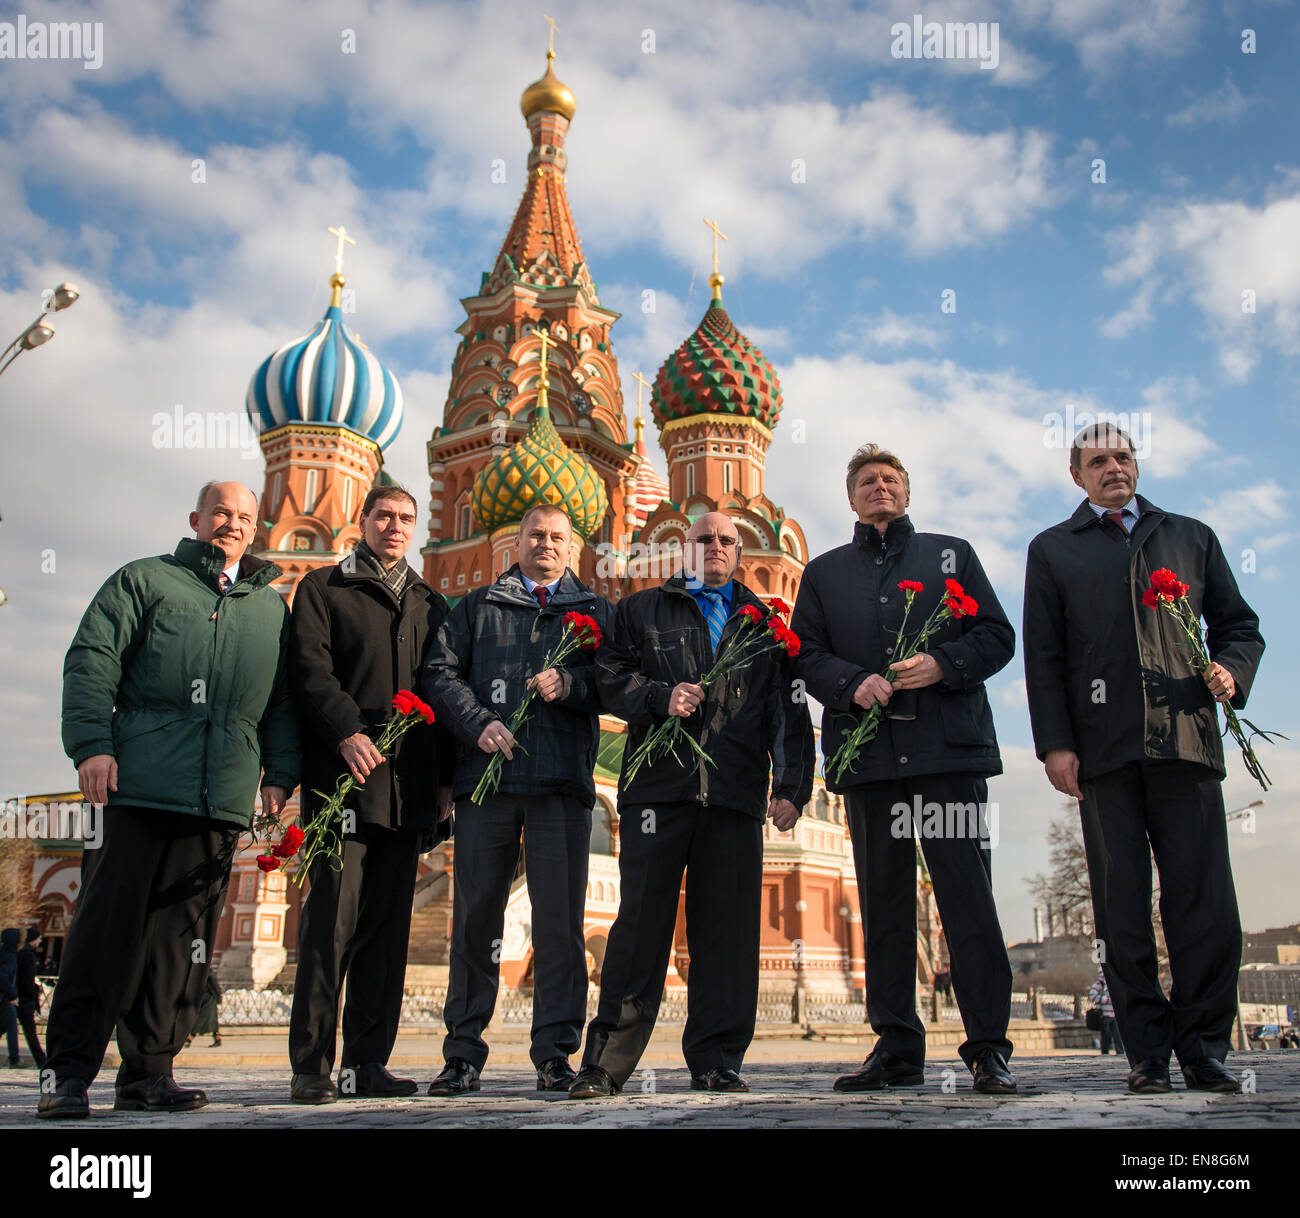 Expedition 43 prime and backup crews pose for a photograph together in front of St. Basil's Cathedral in Moscow - Stock Image